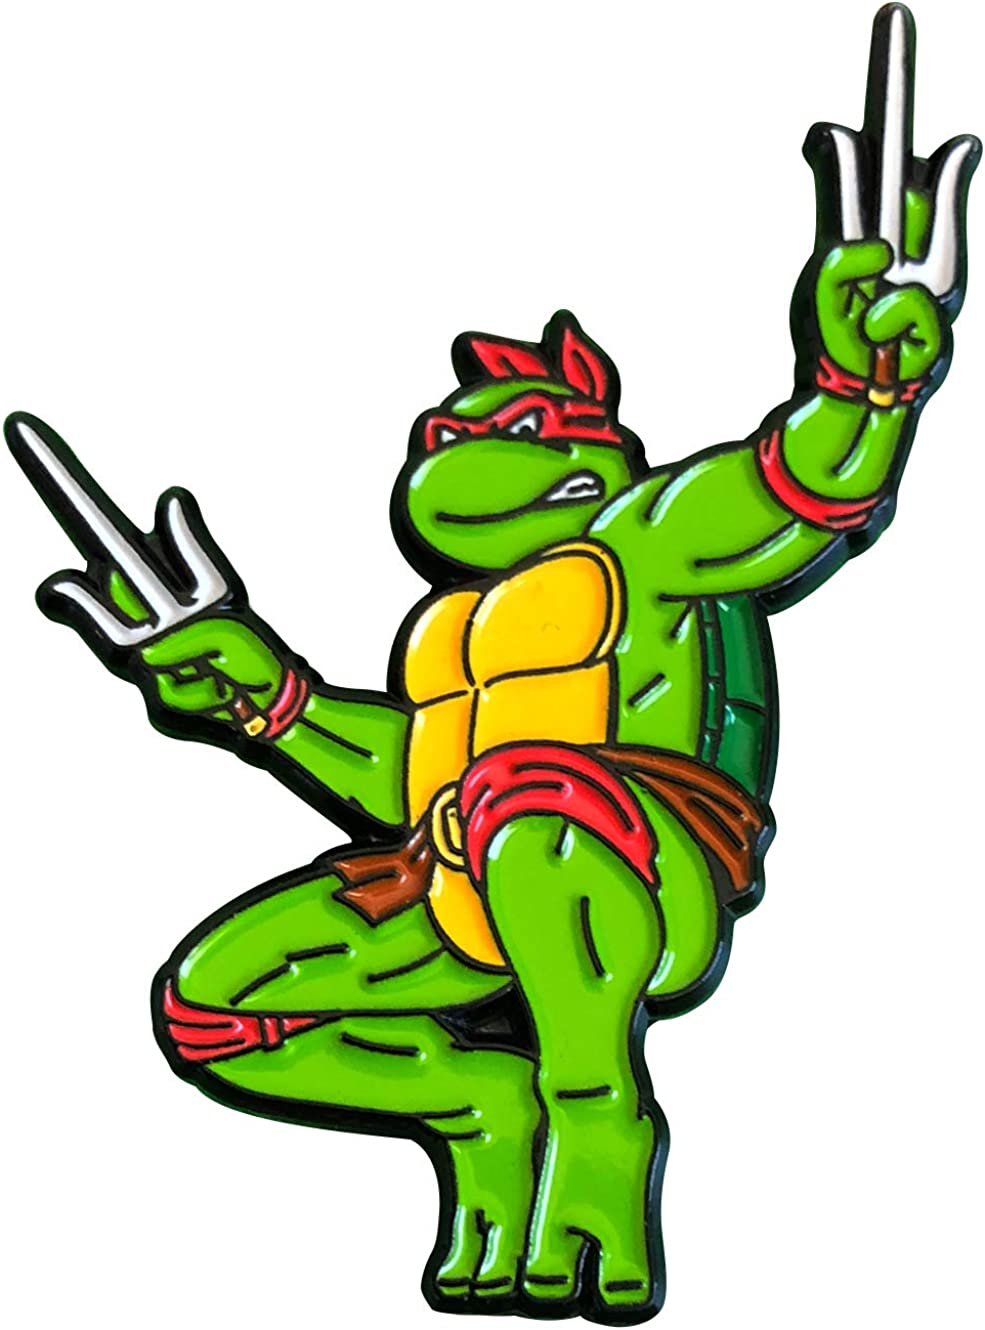 Amazon.com: Leaping Raphael: Teenage Mutant Ninja Turtles Collectible Pin:  Clothing